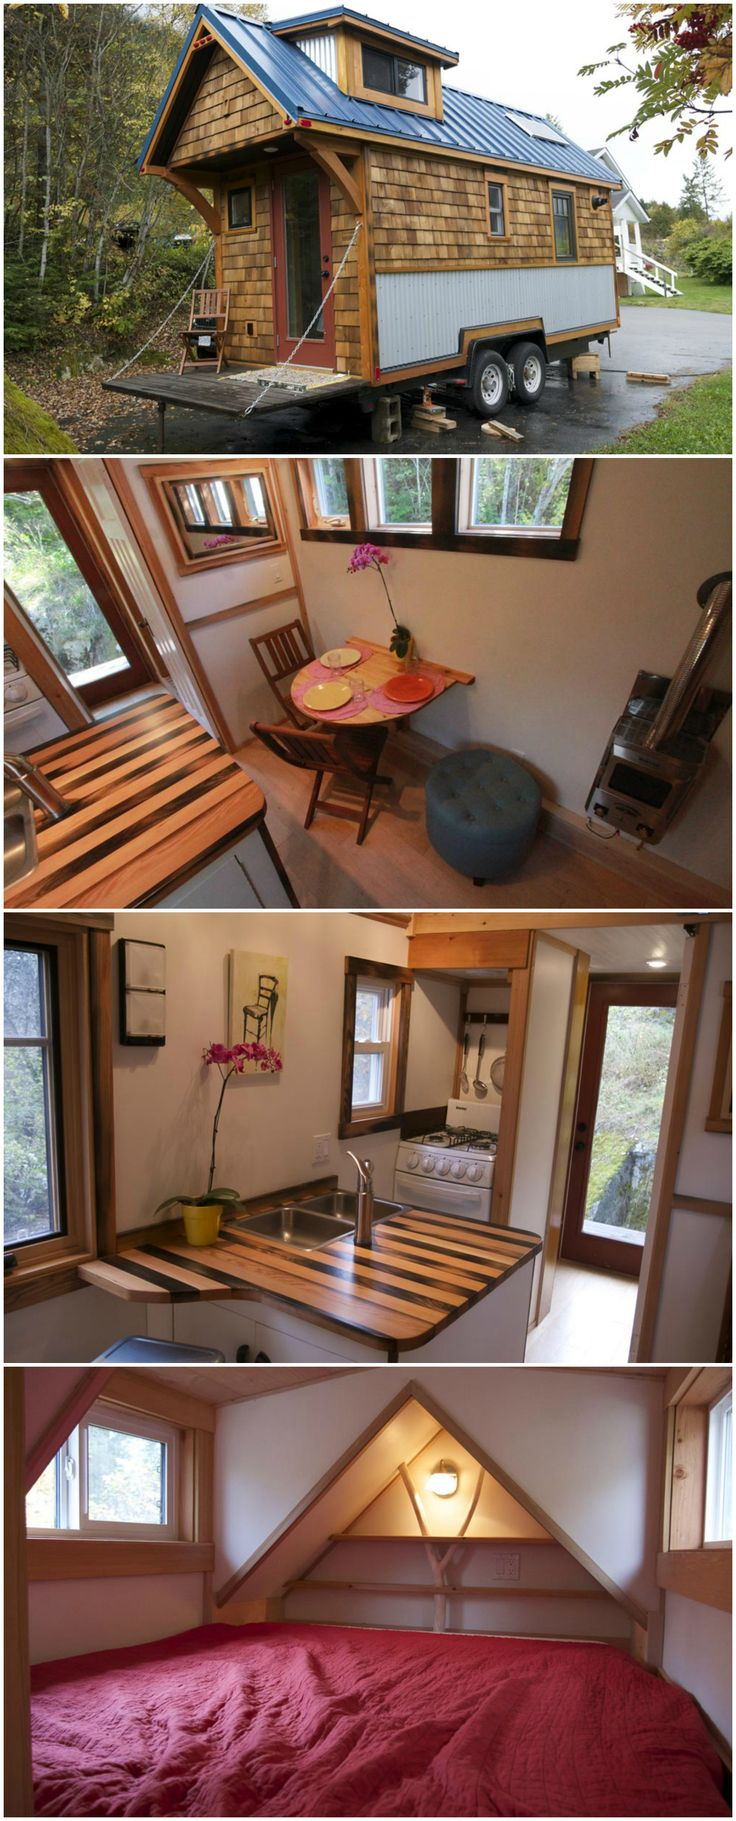 The Acorn House is a traditional style tiny house built by Nelson Tiny Houses.  The house is 135-square-feet on the main floor, plus it has a queen size sleeping loft and a storage loft.  Inside are Canadian maple floors, custom furniture built with reclaimed materials, and a fold down table. A full pantry, beautiful butcher block counter, and four burner stove are in the kitchen. A retractable loft ladder stays out of the way when not in use.